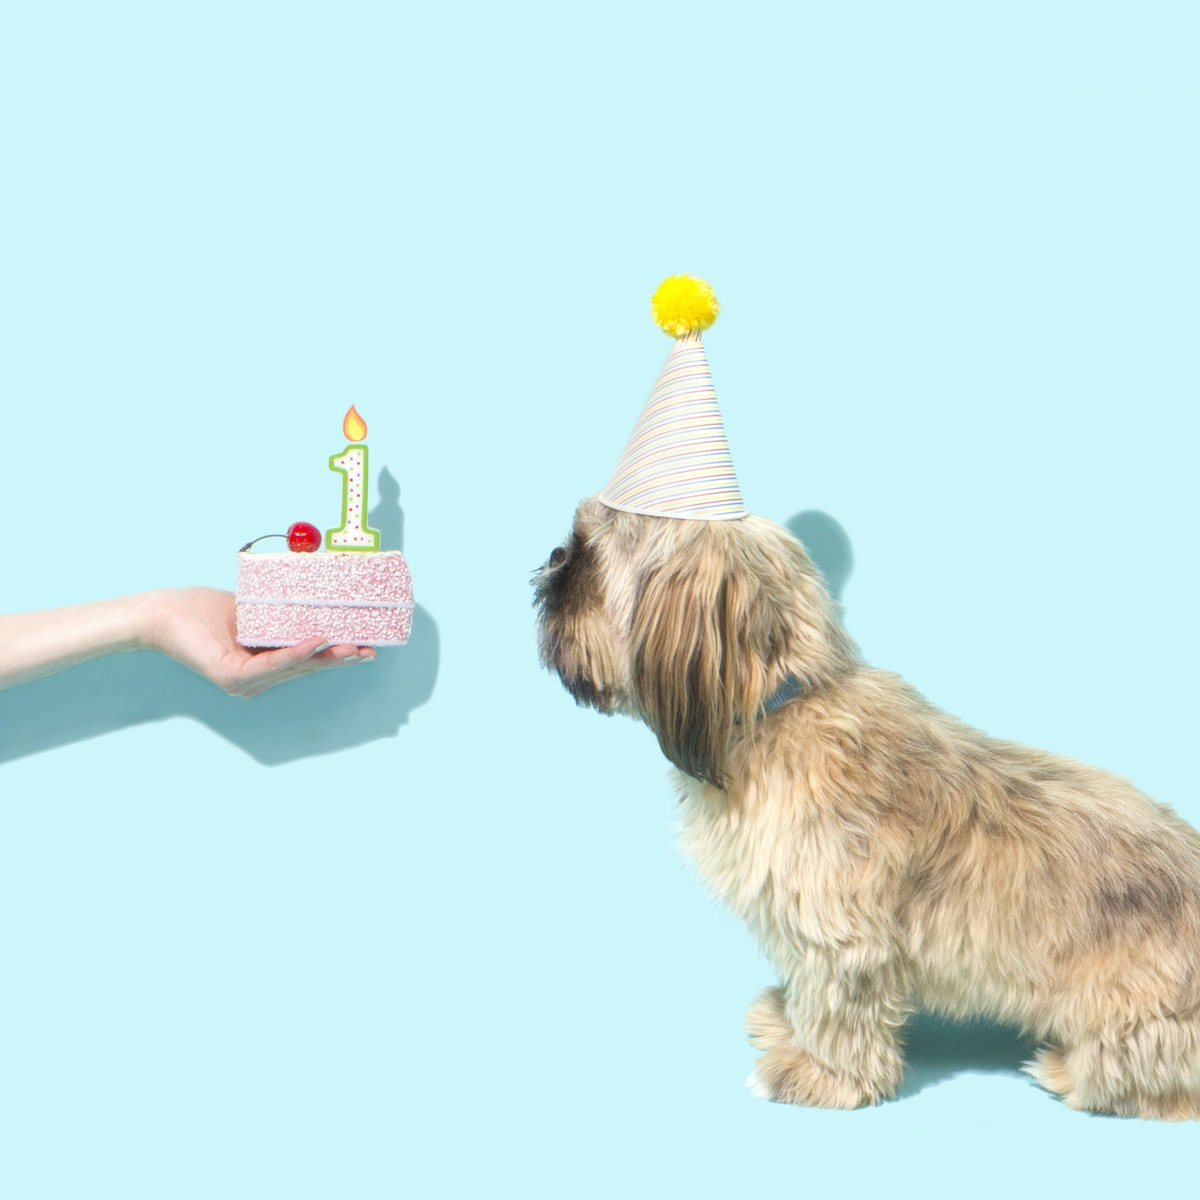 a doggy receiving a birthday cake